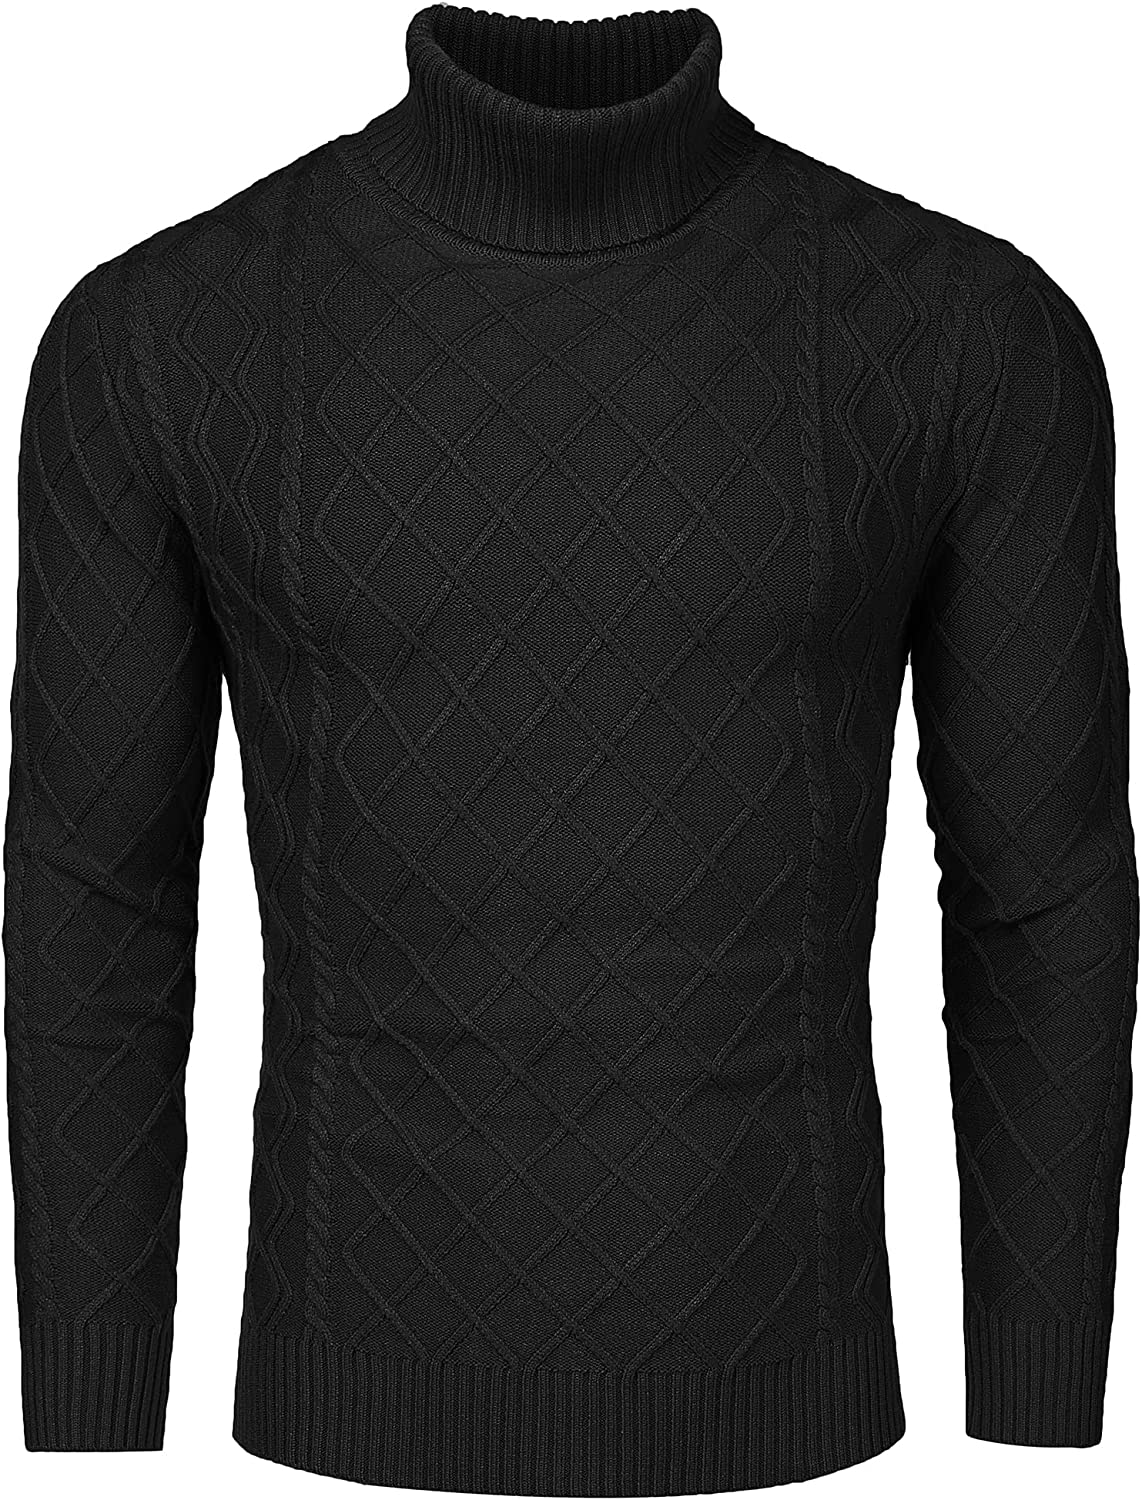 COOFANDY Men's Slim Fit Turtleneck Cotton Twisted Max 63% OFF Sweater Casual Detroit Mall